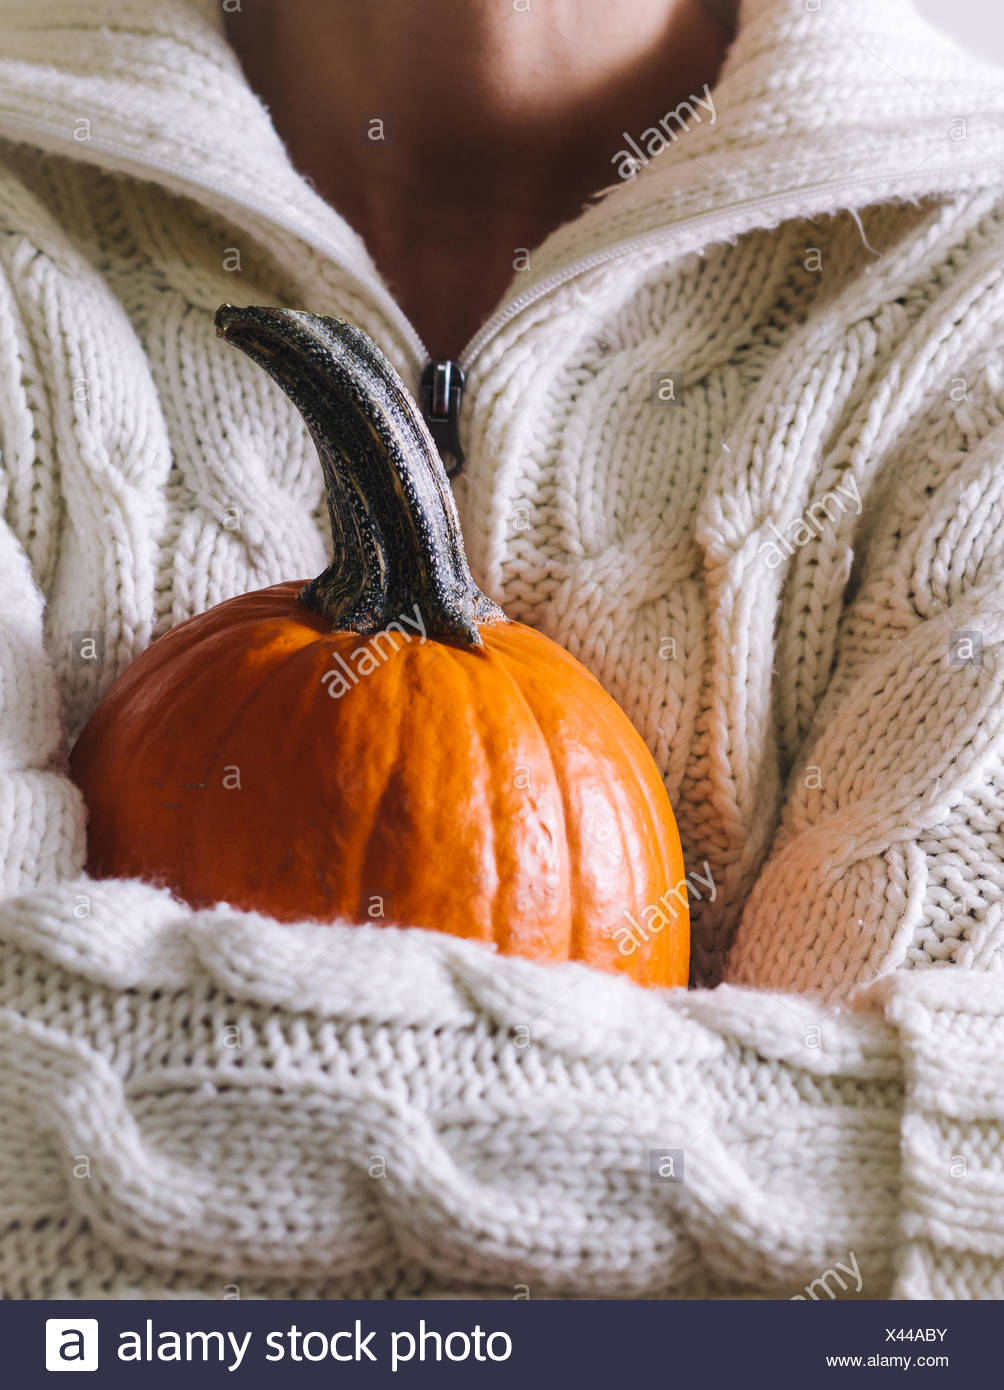 Midsection Of Person Holding Pumpkin Stock Photo